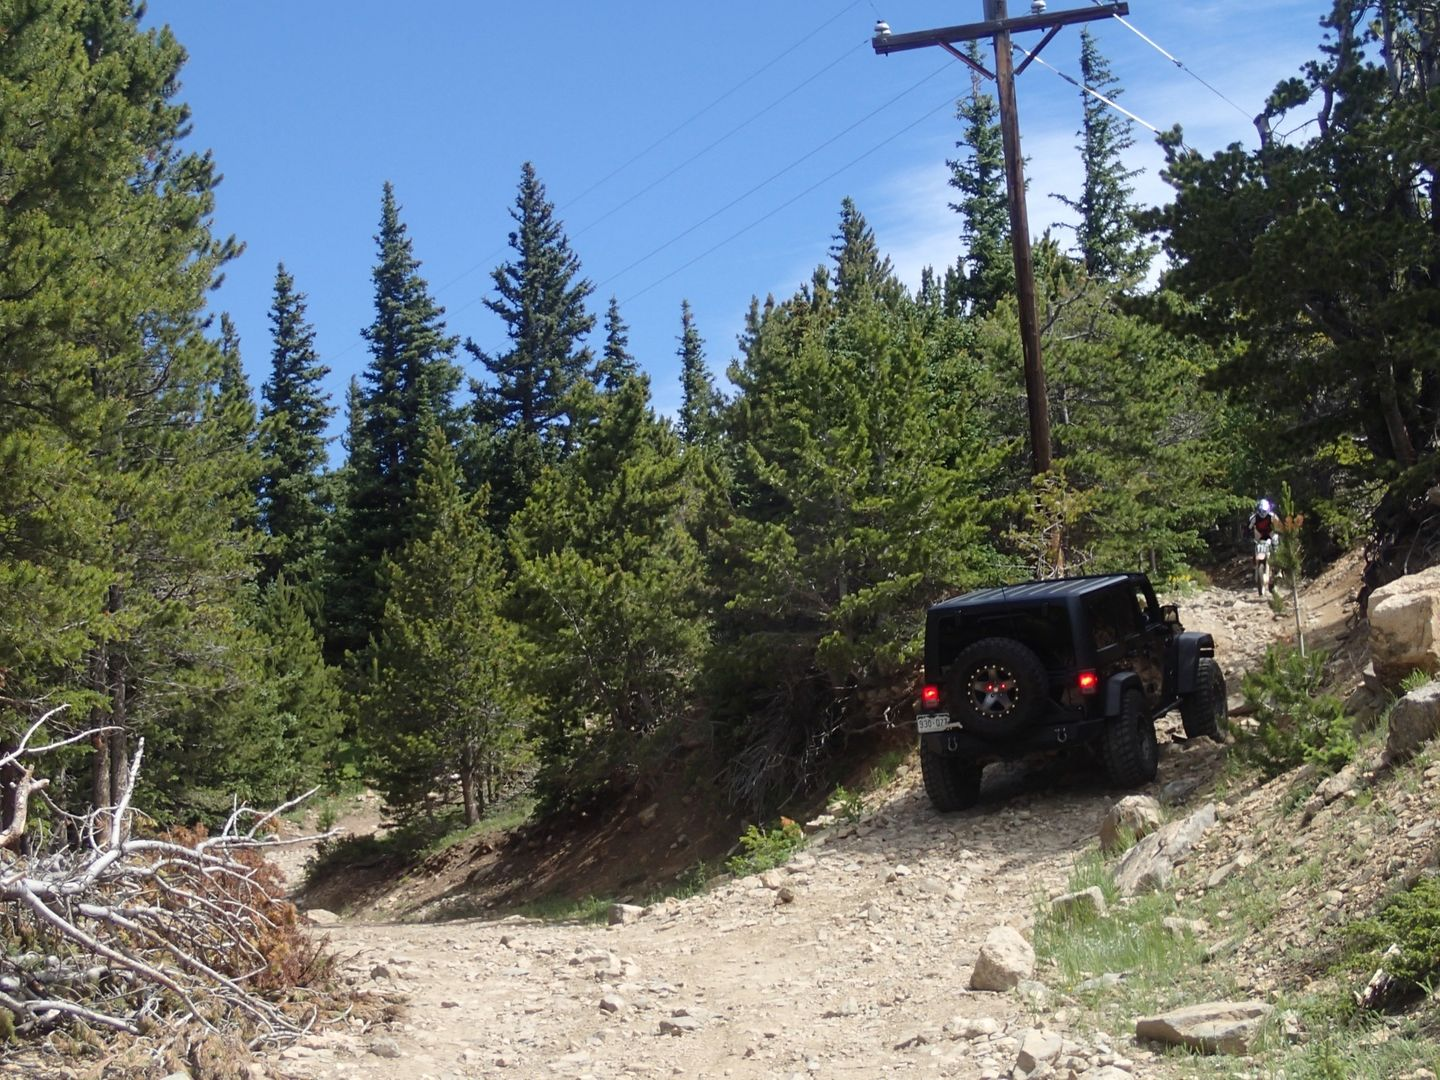 Yankee Hill to Central City - Waypoint 1: Mine Road Trailhead